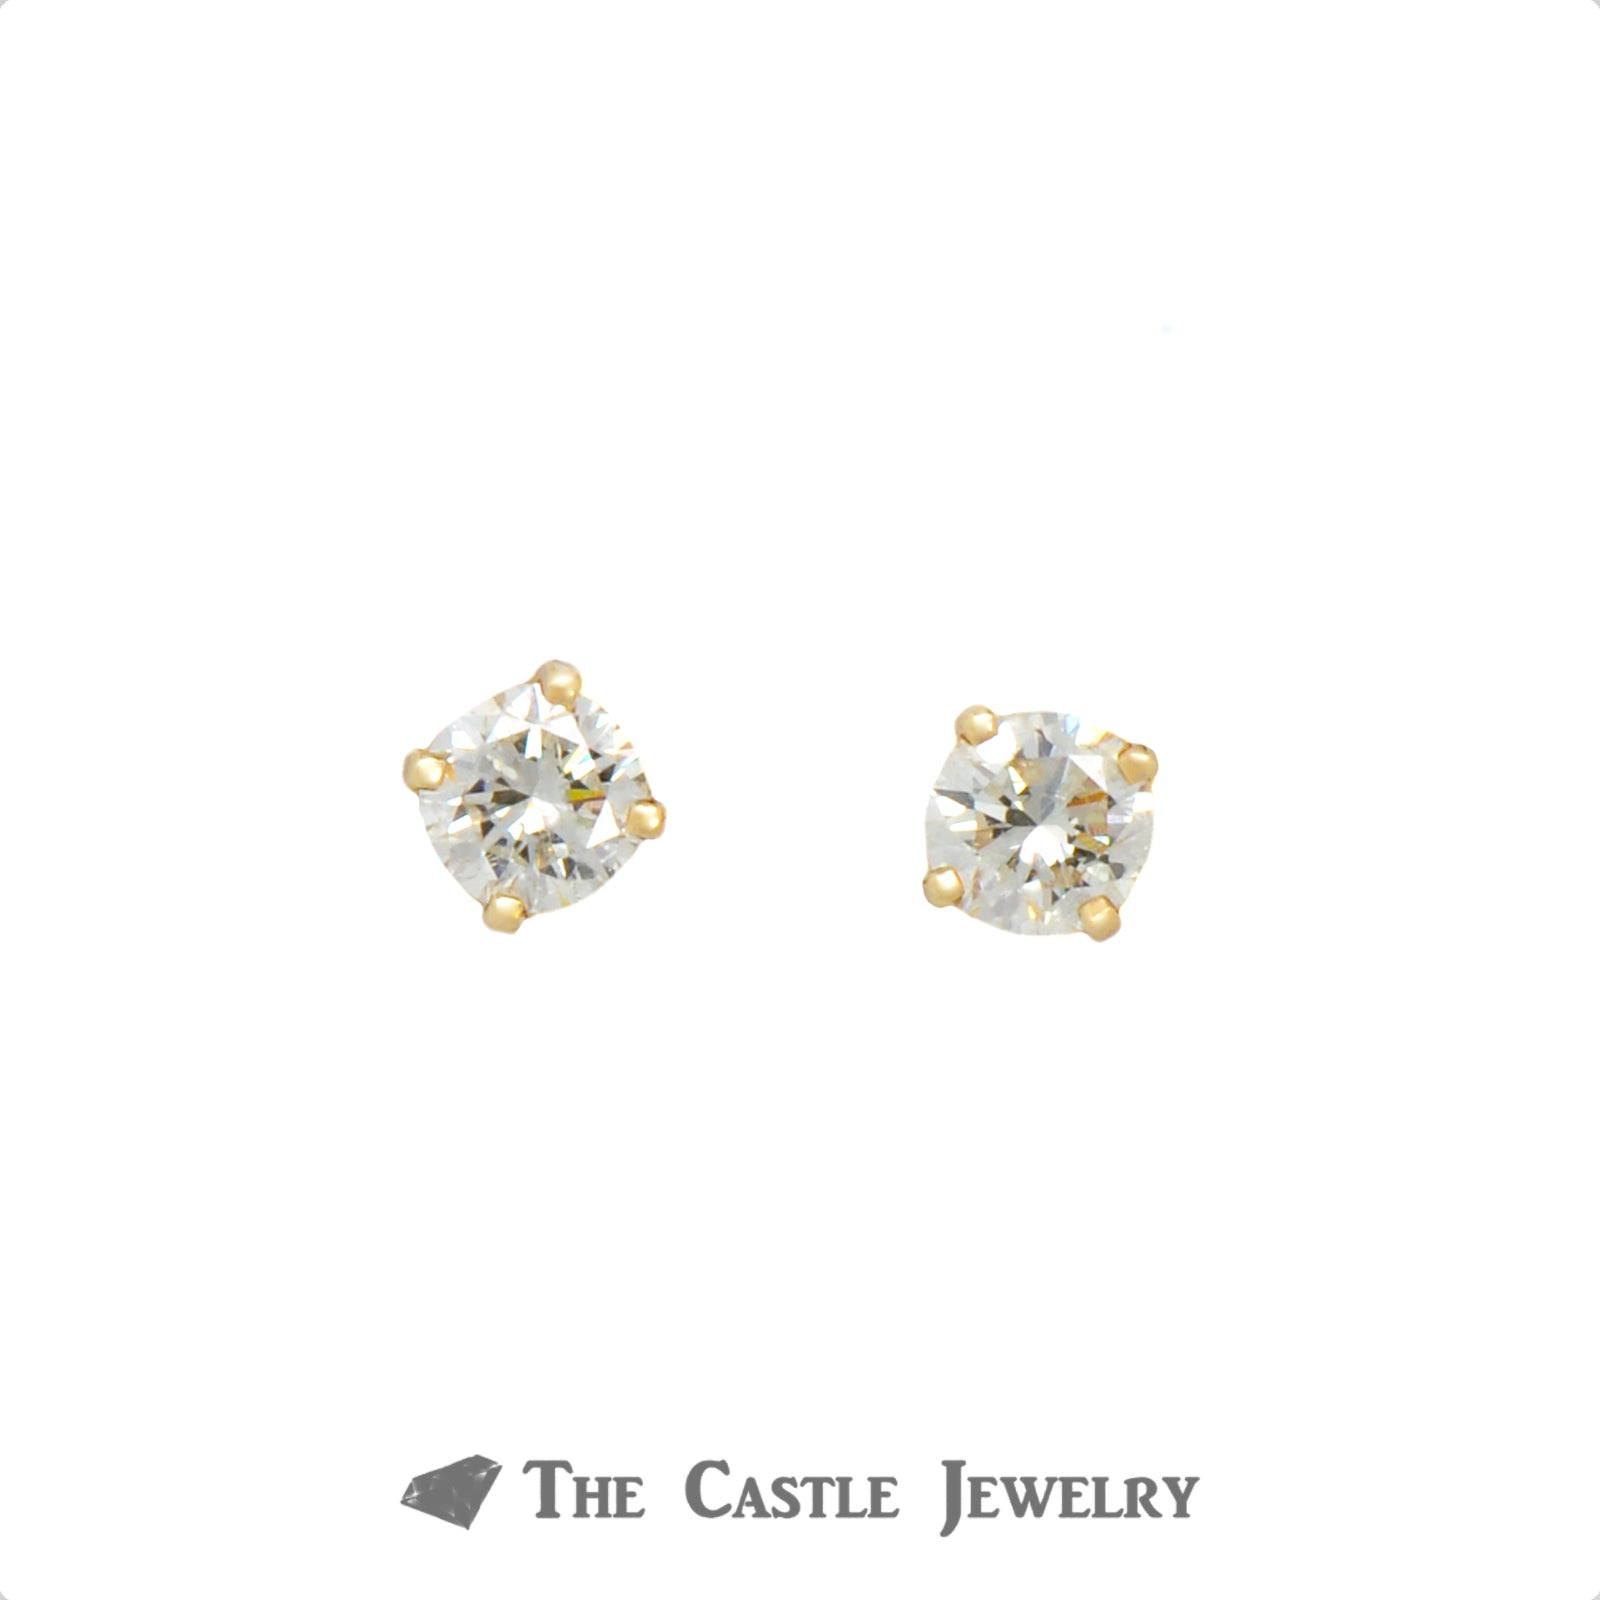 .75cttw Round Brilliant Cut Diamond Studs in 14k Yellow Gold